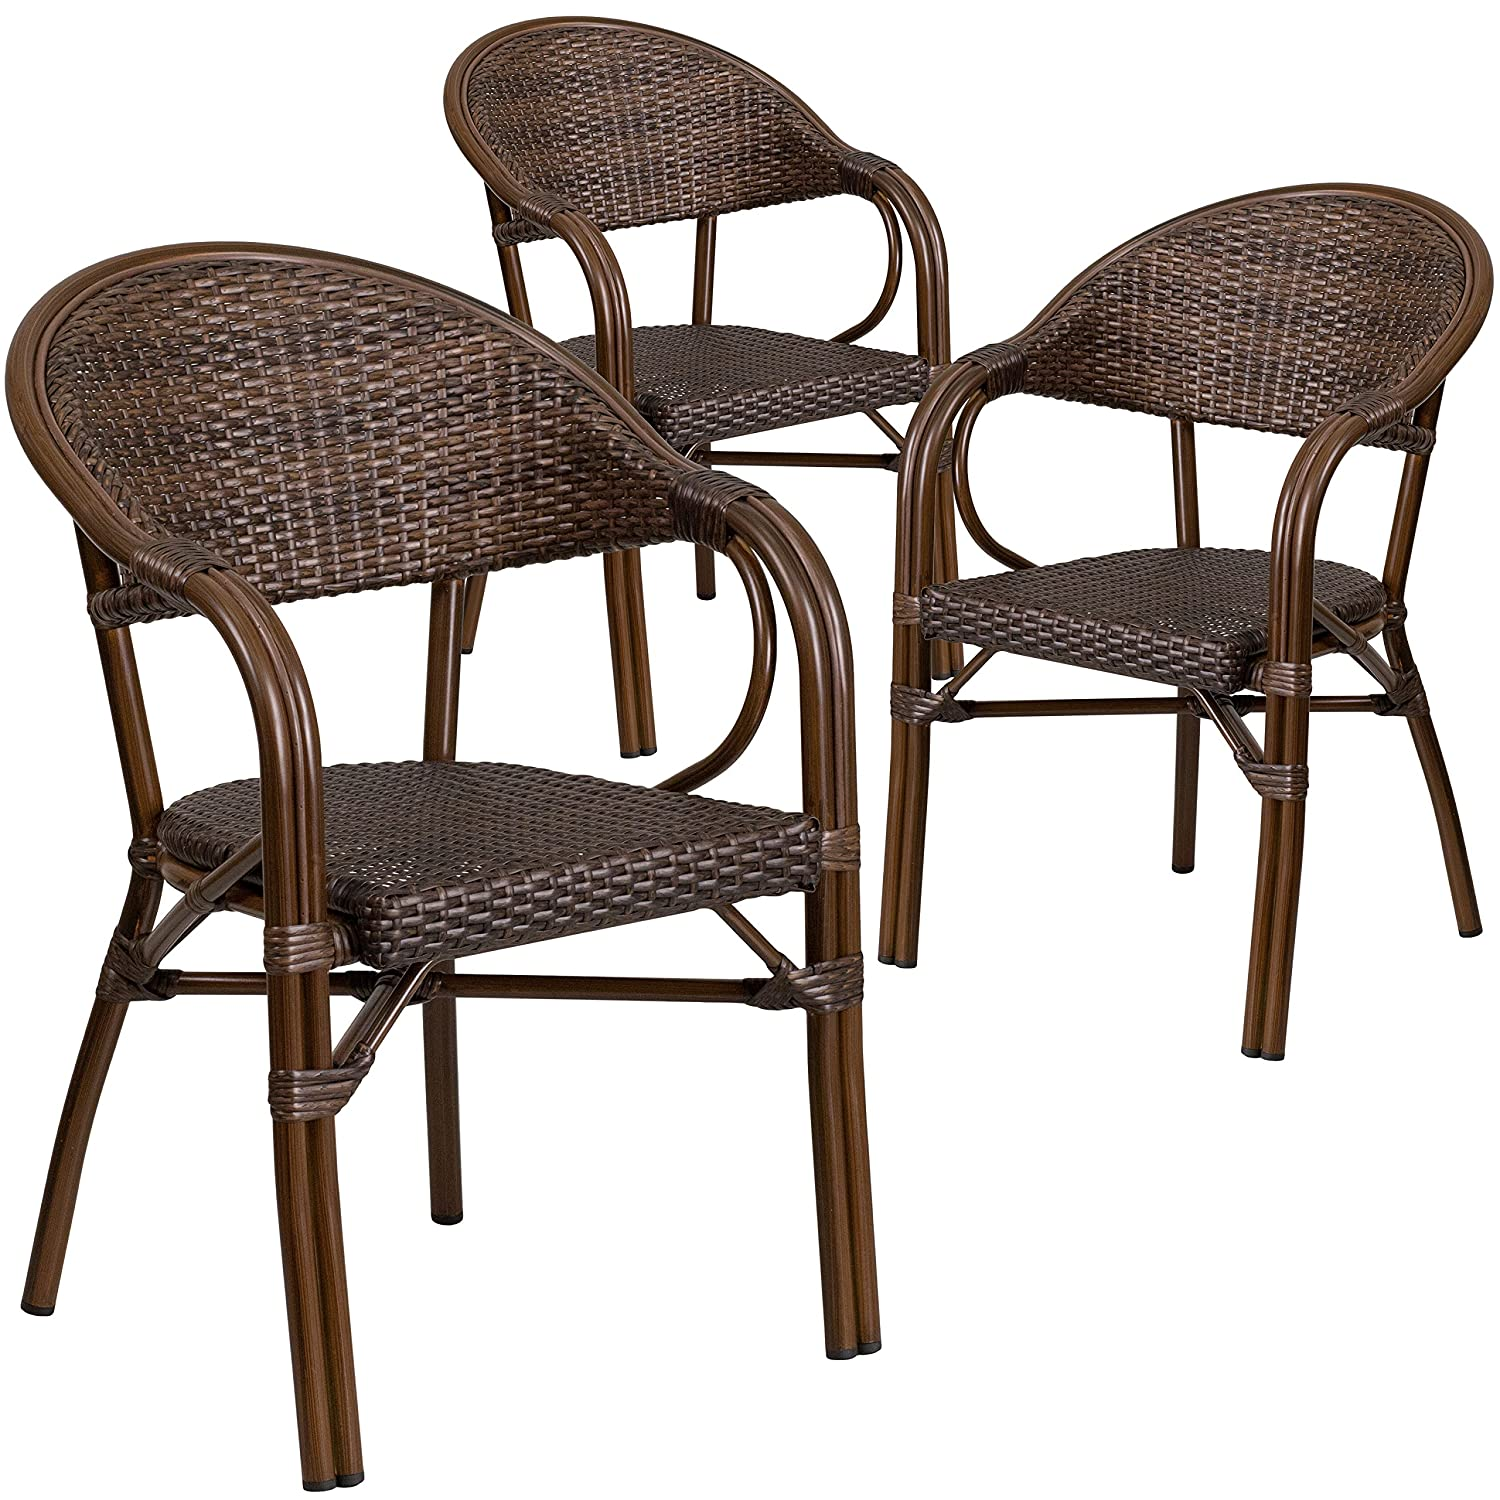 Amazon com flash furniture 3 pk milano series bark brown rattan restaurant patio chair with bamboo aluminum frame kitchen dining